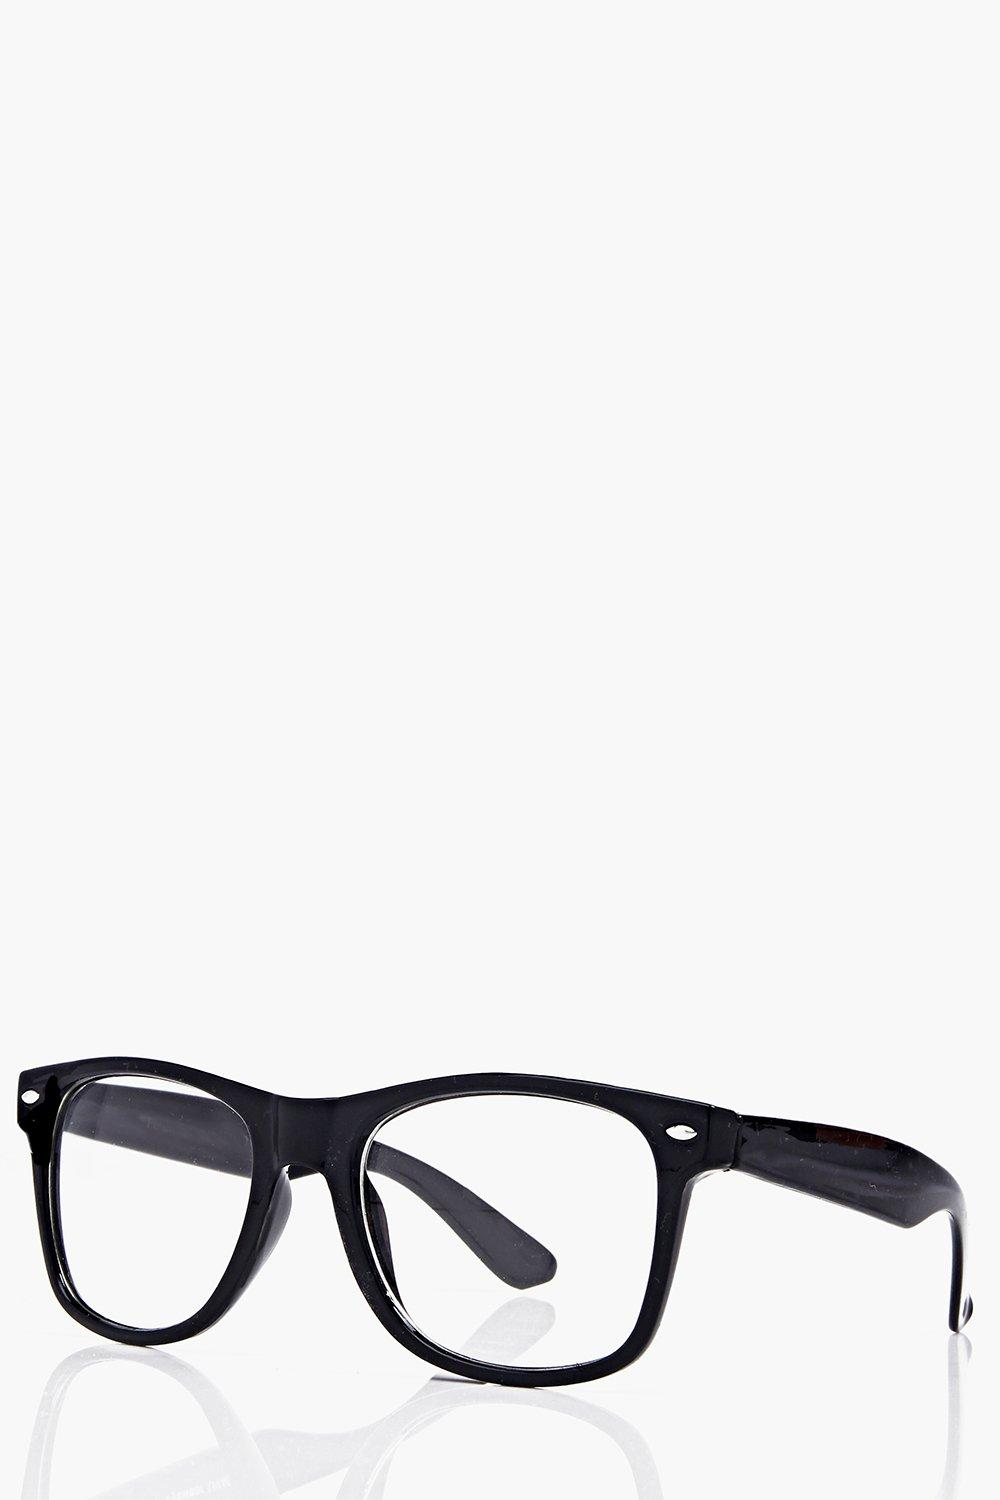 boohoo Geek Clear Lens Glasses - black